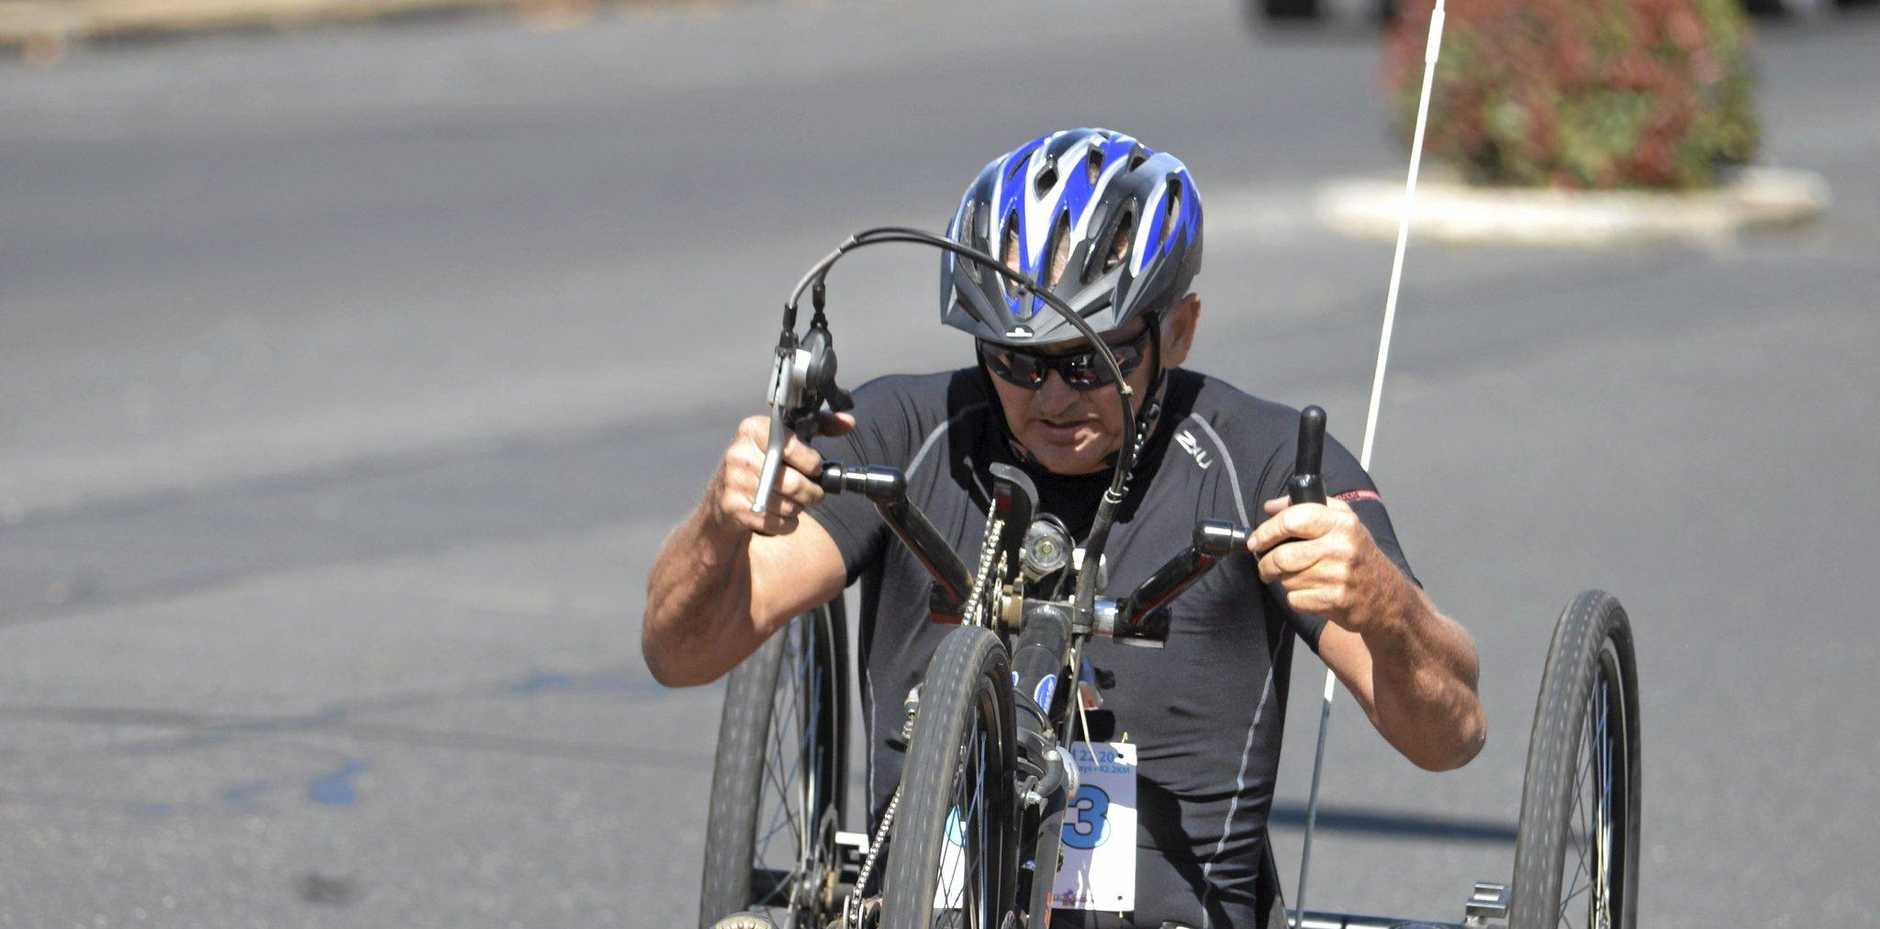 FAST: Warwick competitor Peter McDonnell wins a wheelchair race in Daily News Pentath-run.